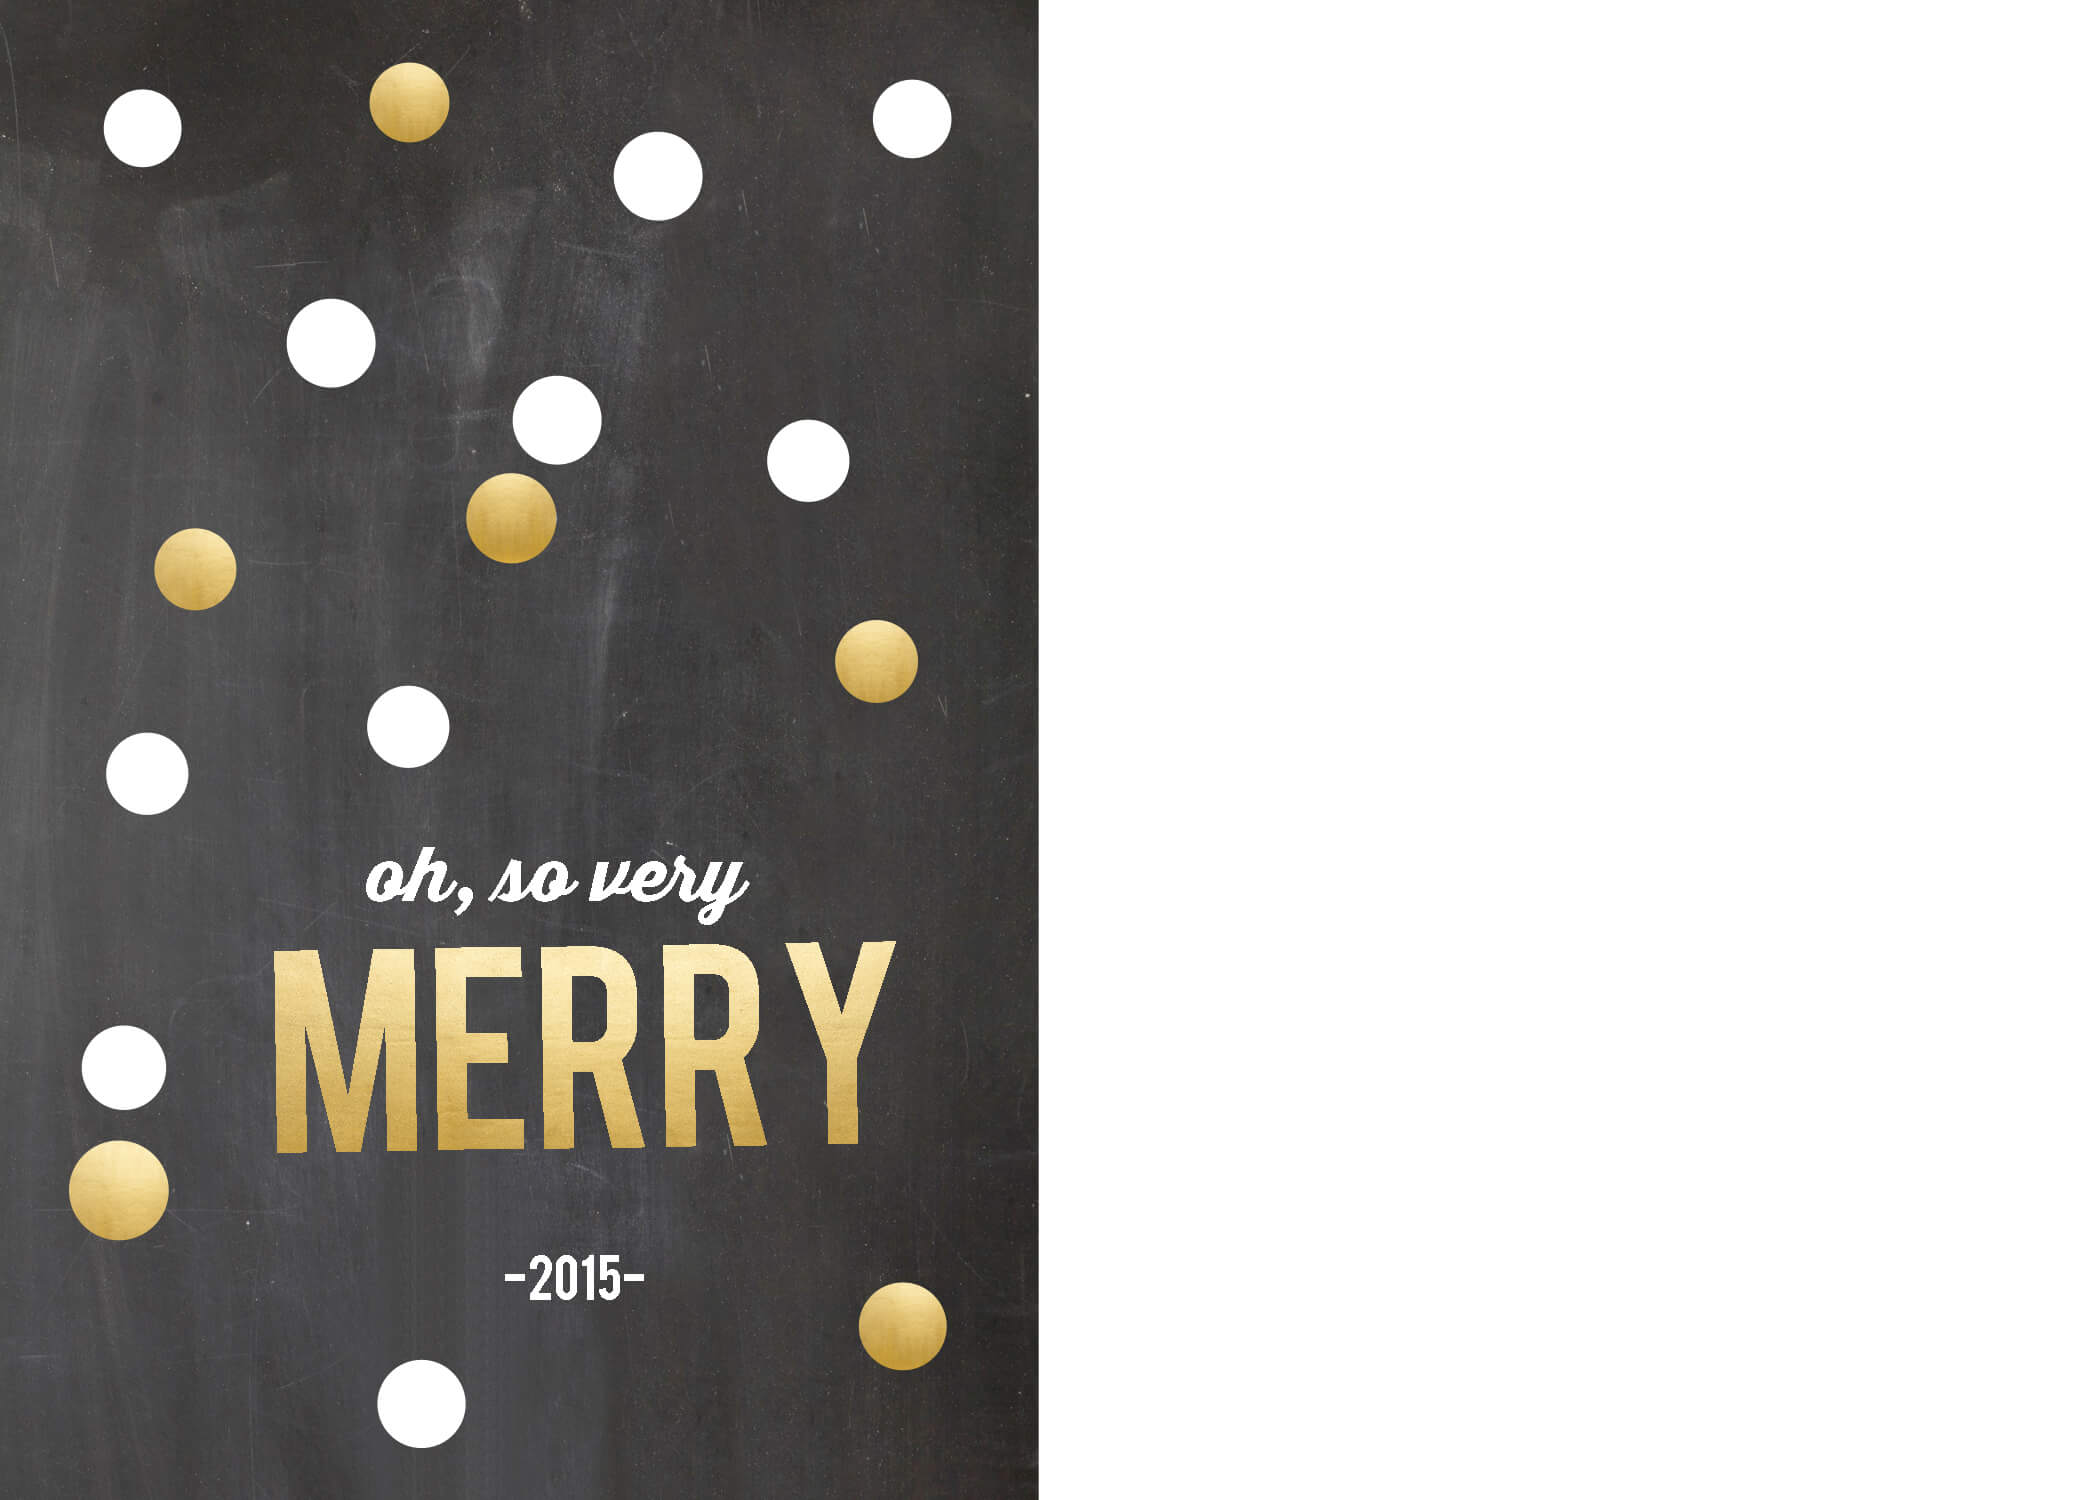 Free Christmas Card Templates Intended For Free Photoshop Christmas Card Templates For Photographers